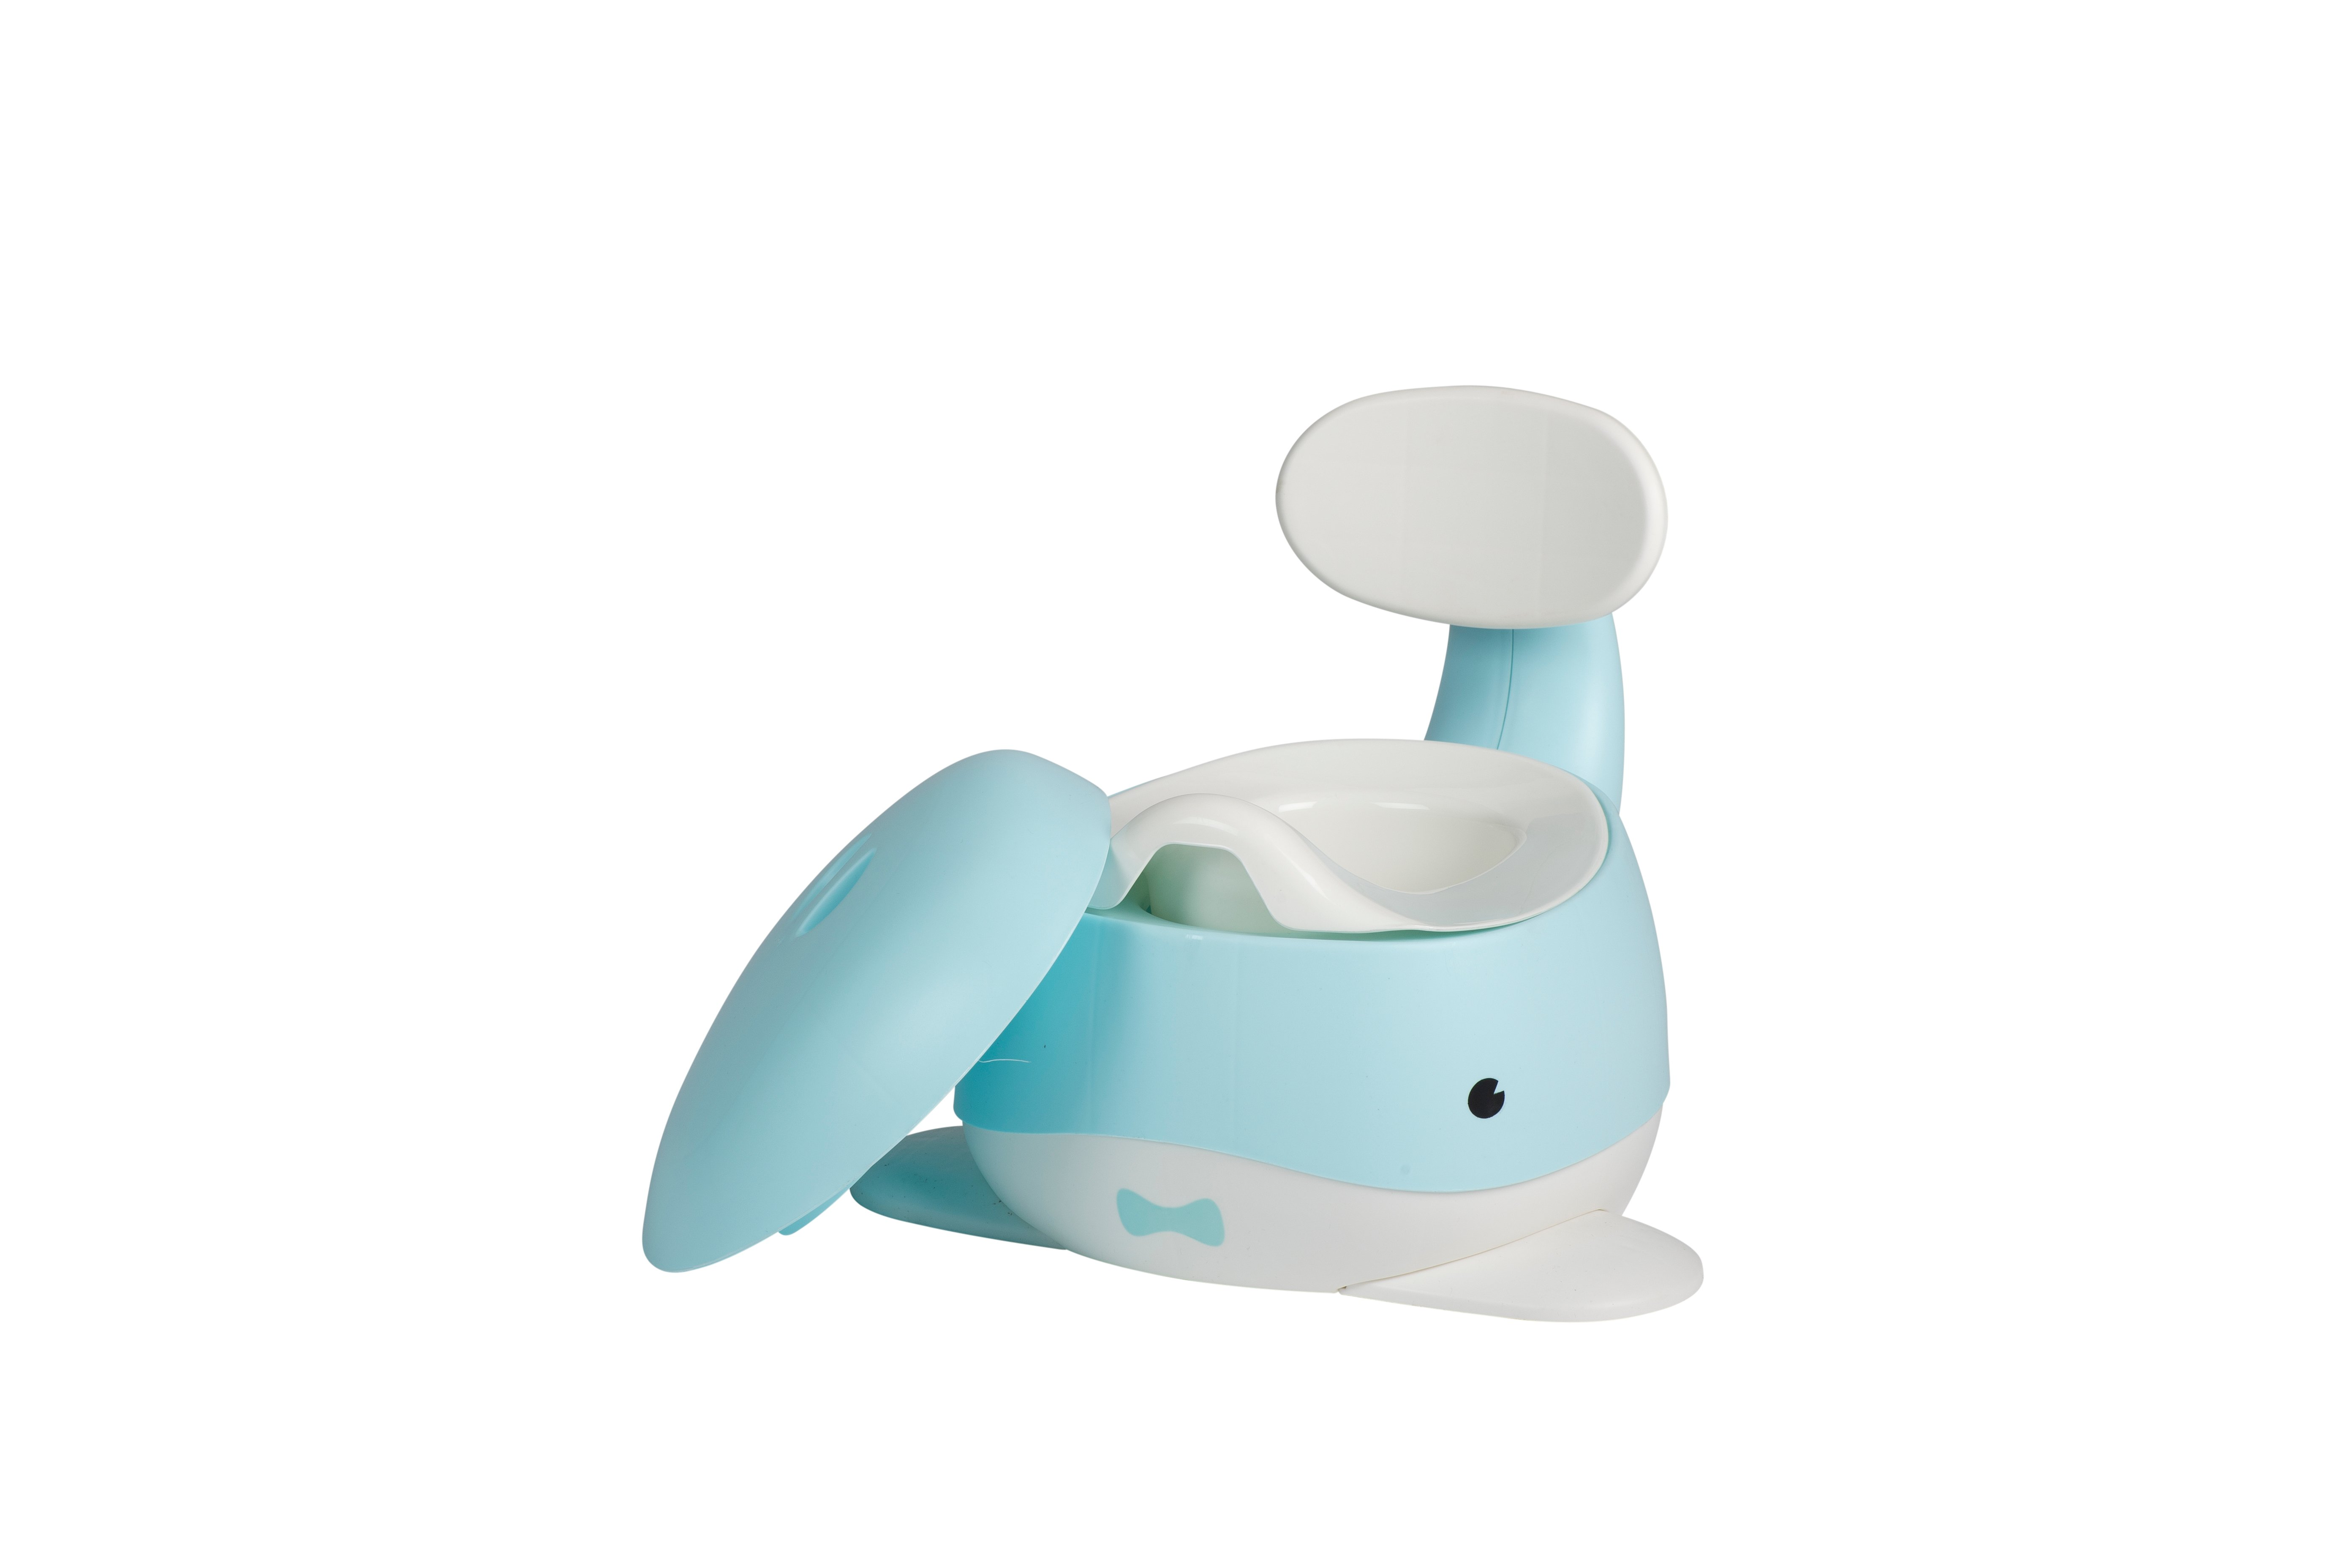 Babytrold - Baby Whale Potty - White and Blue